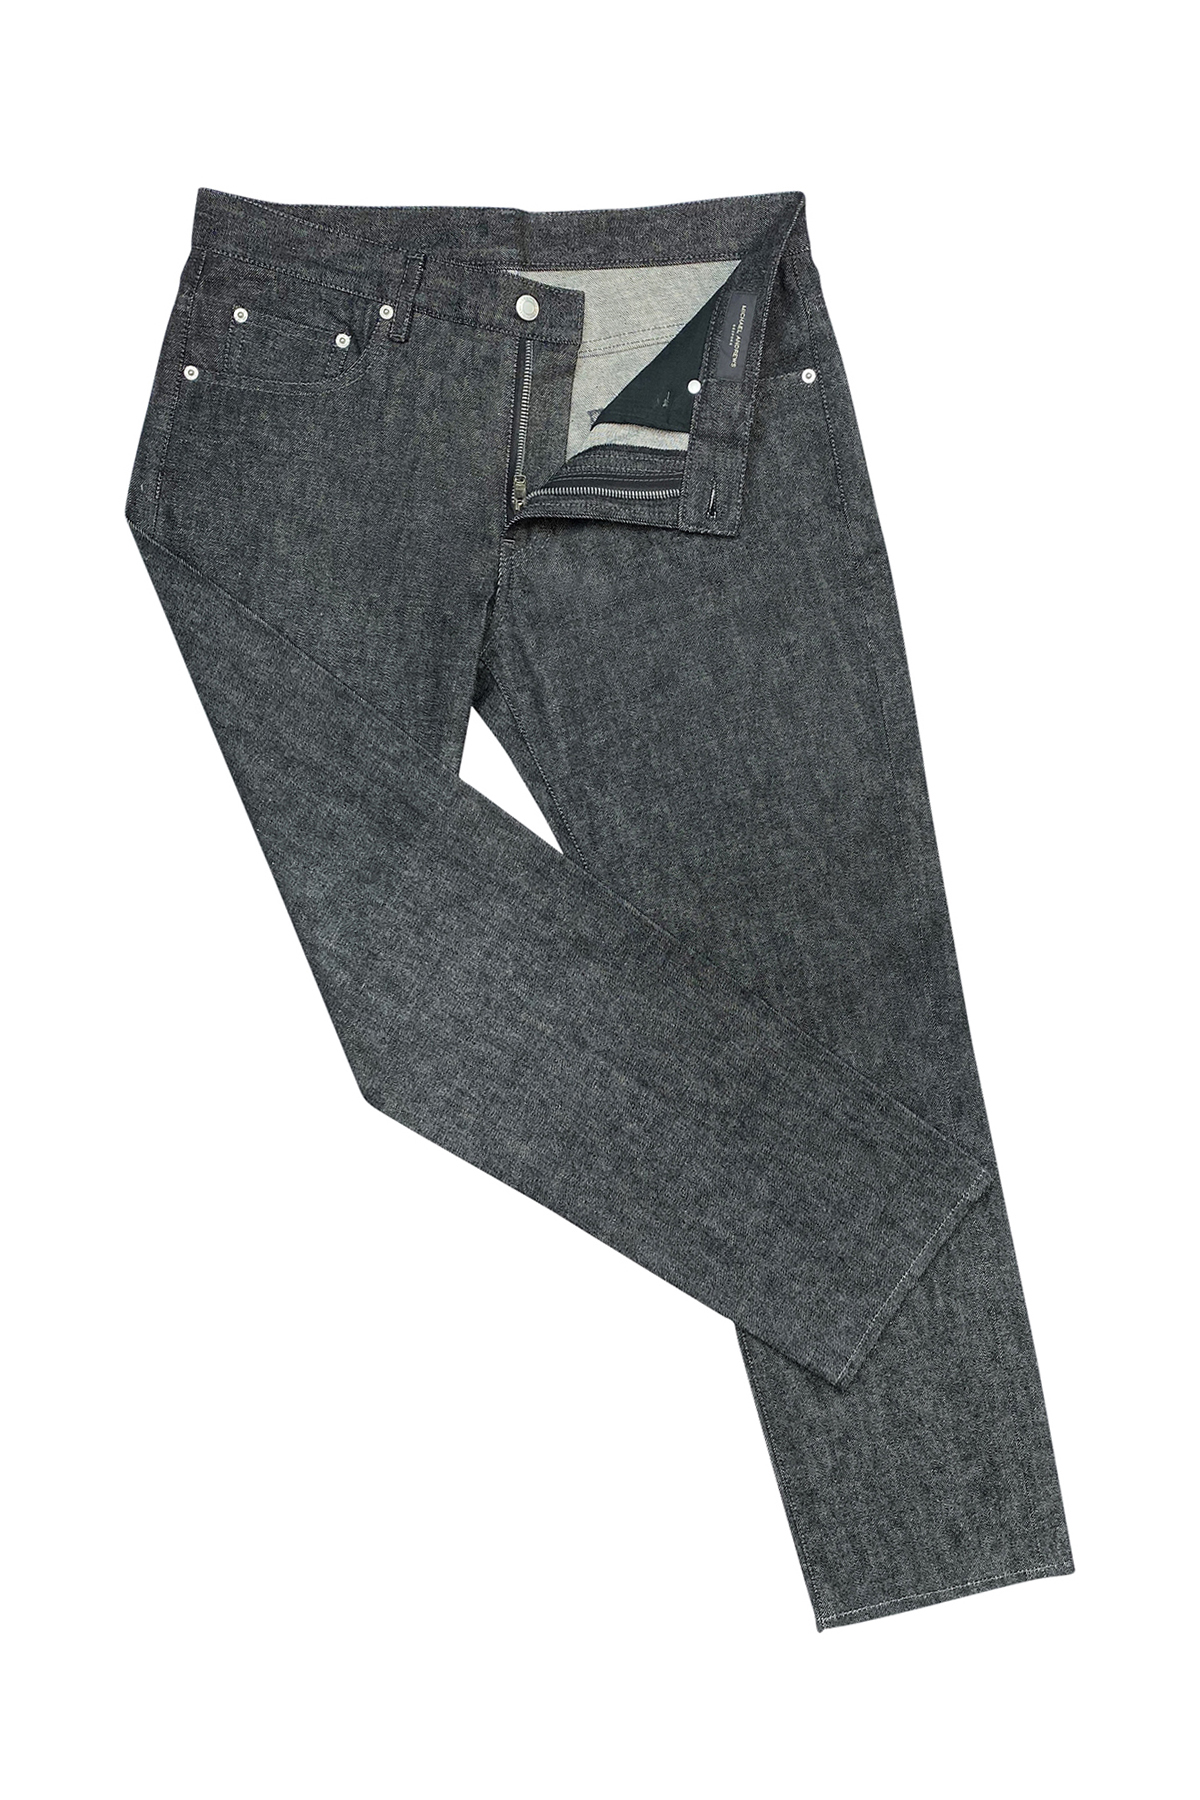 Charcoal Stretch Denim Jeans